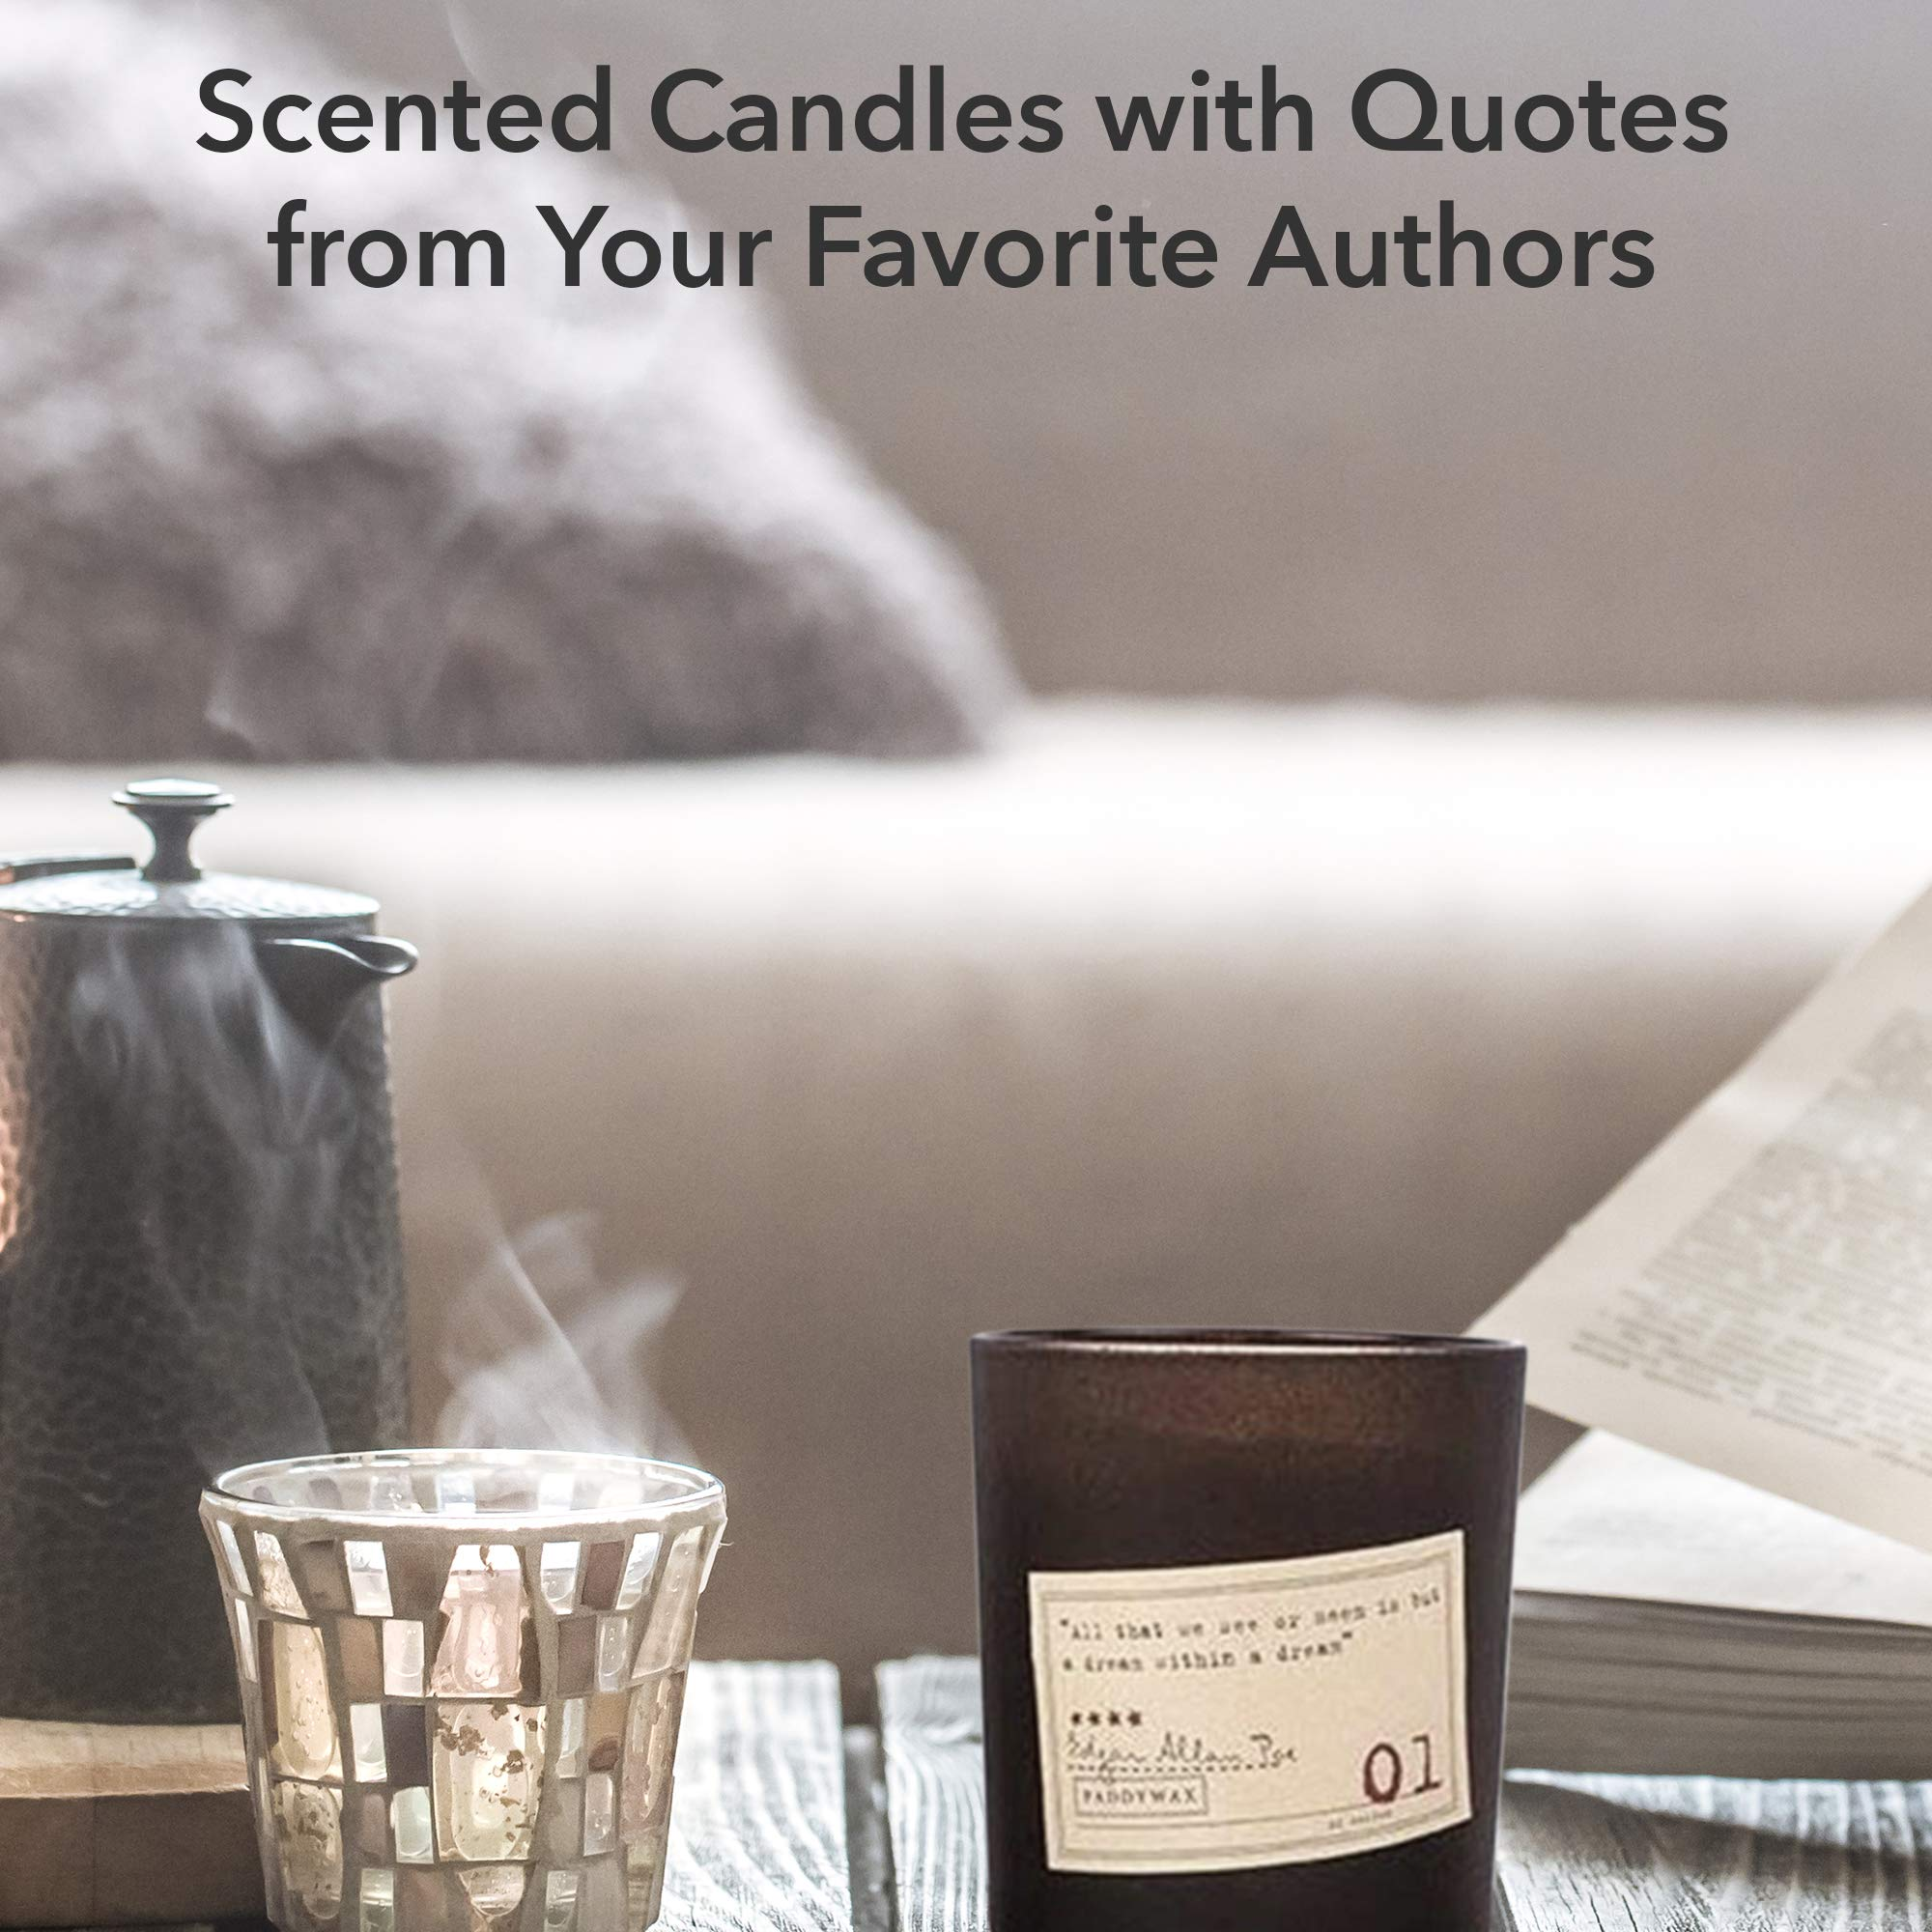 Stock Your Home Paddywax Library Candle Collection Set of 4 Edgar Allan Poe & Jane Austen - 6.5-Ounce & Travel Tin Scented Soy Wax Candle Combo Gift Set with Bonus Wick Trimmer